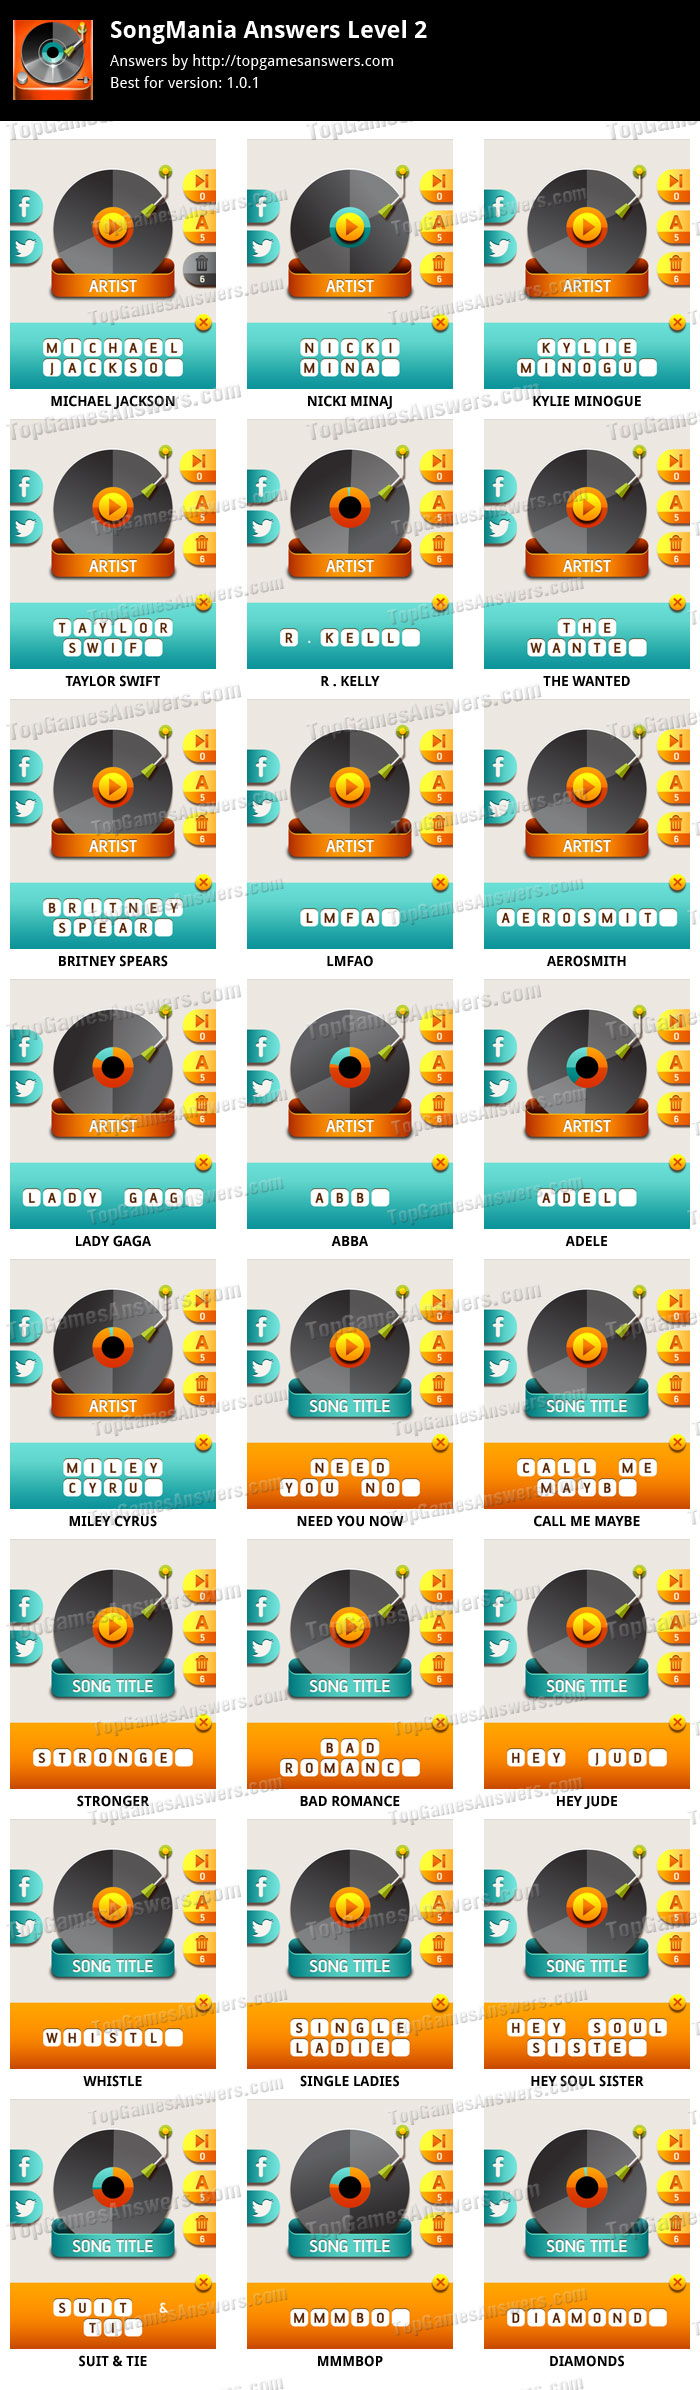 SongMania-Answers-Level-2-for-iphone